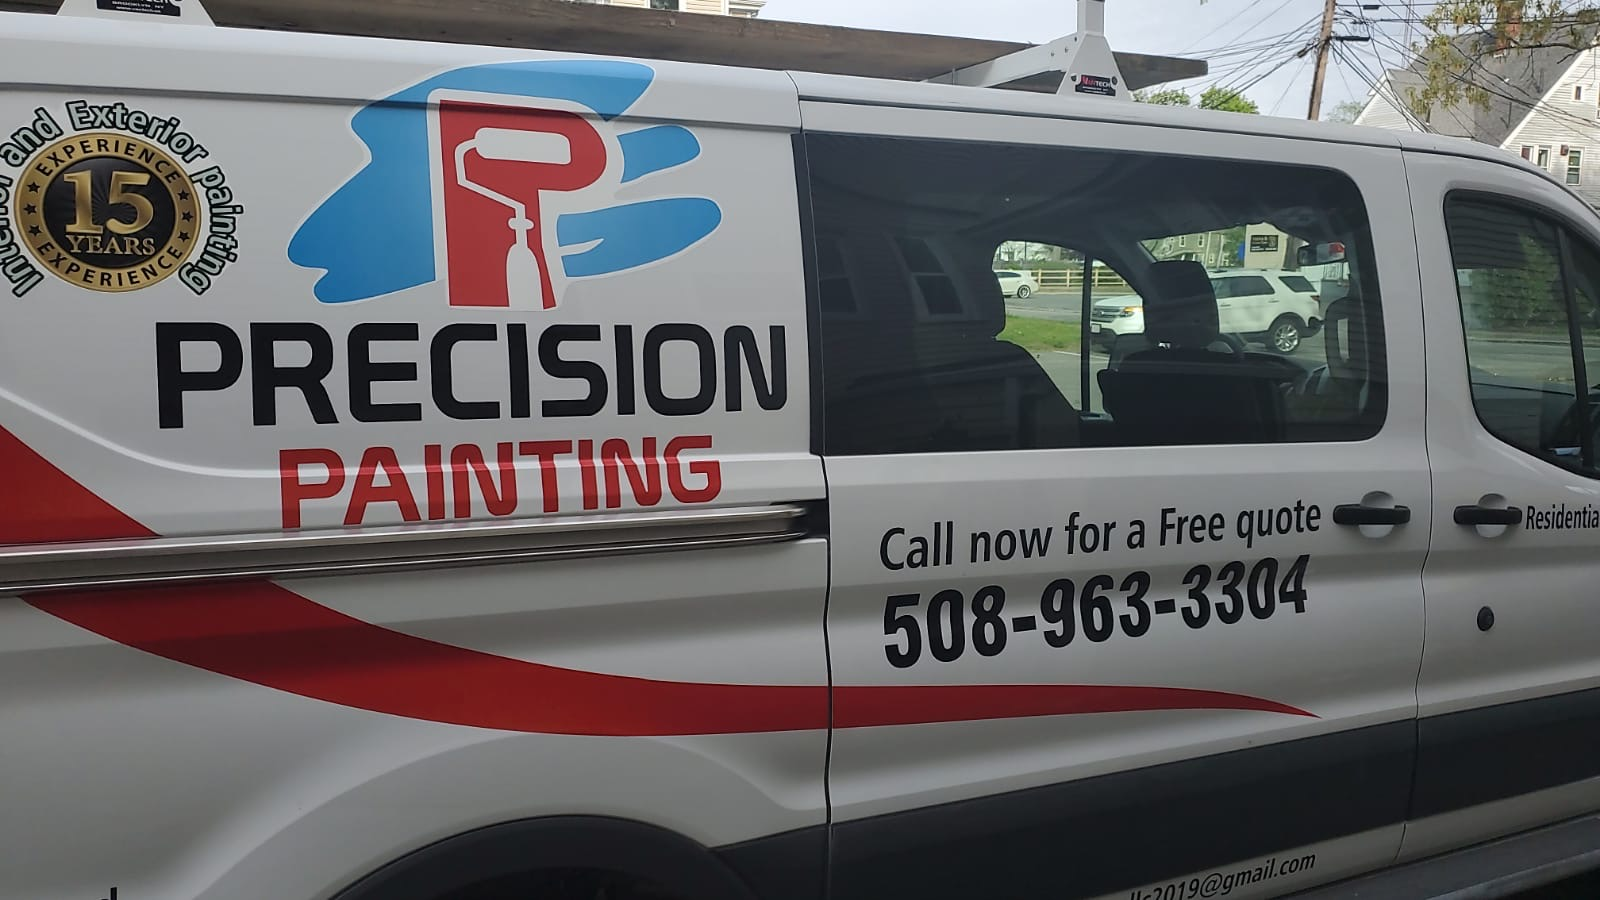 Precision Painting van with branding